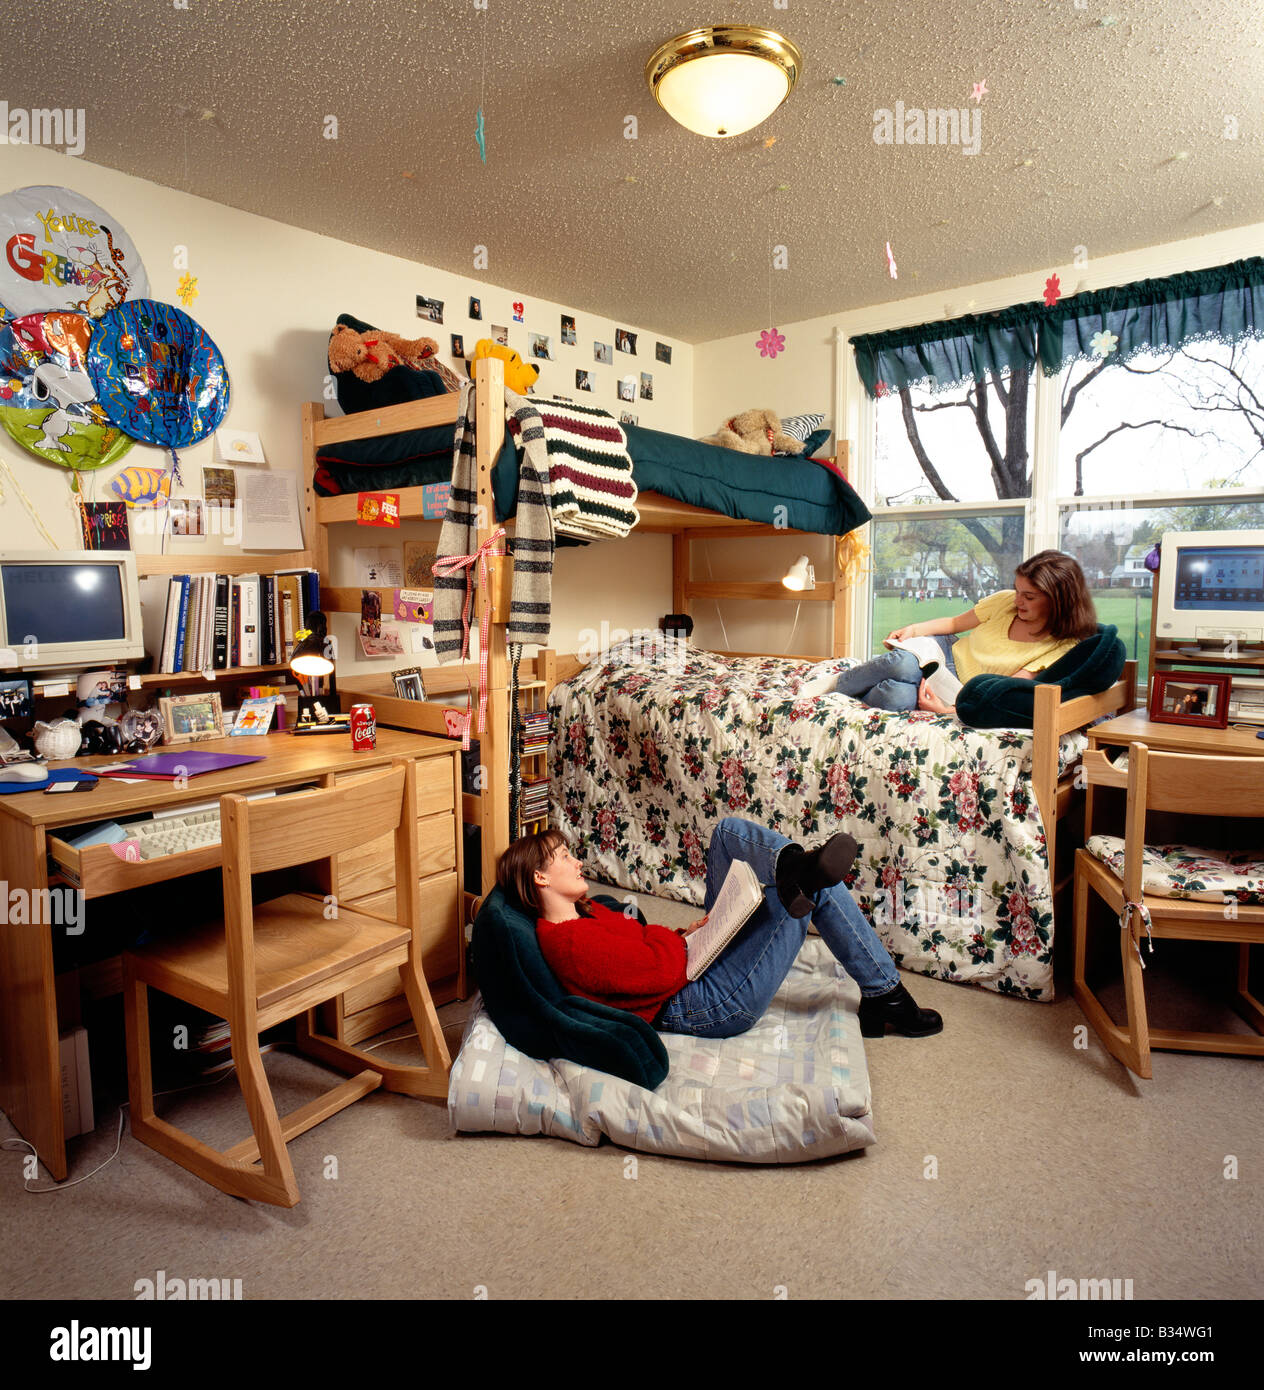 How To Design A Dorm Room